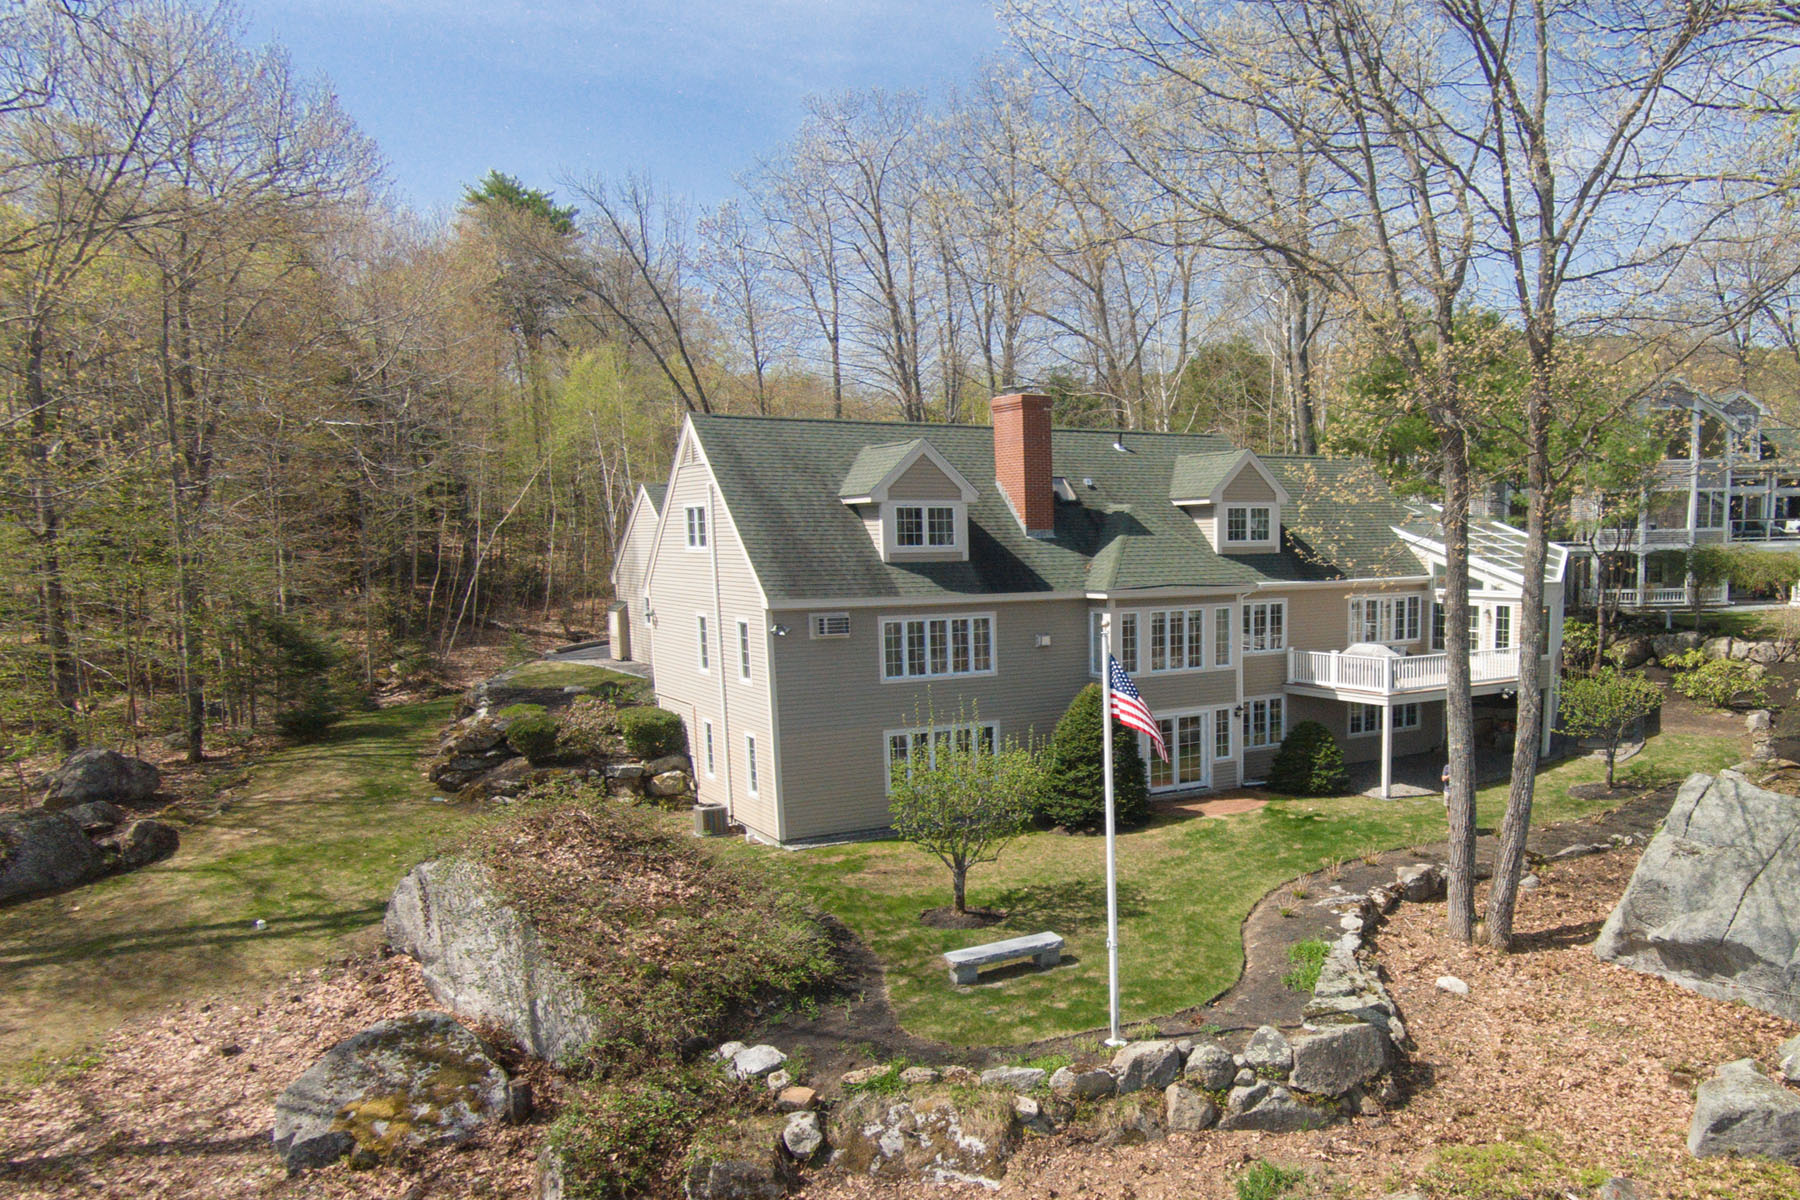 Single Family Home for Sale at Pristine Grouse Point Home 17 Grouse Hollow Road Meredith, New Hampshire 03253 United States